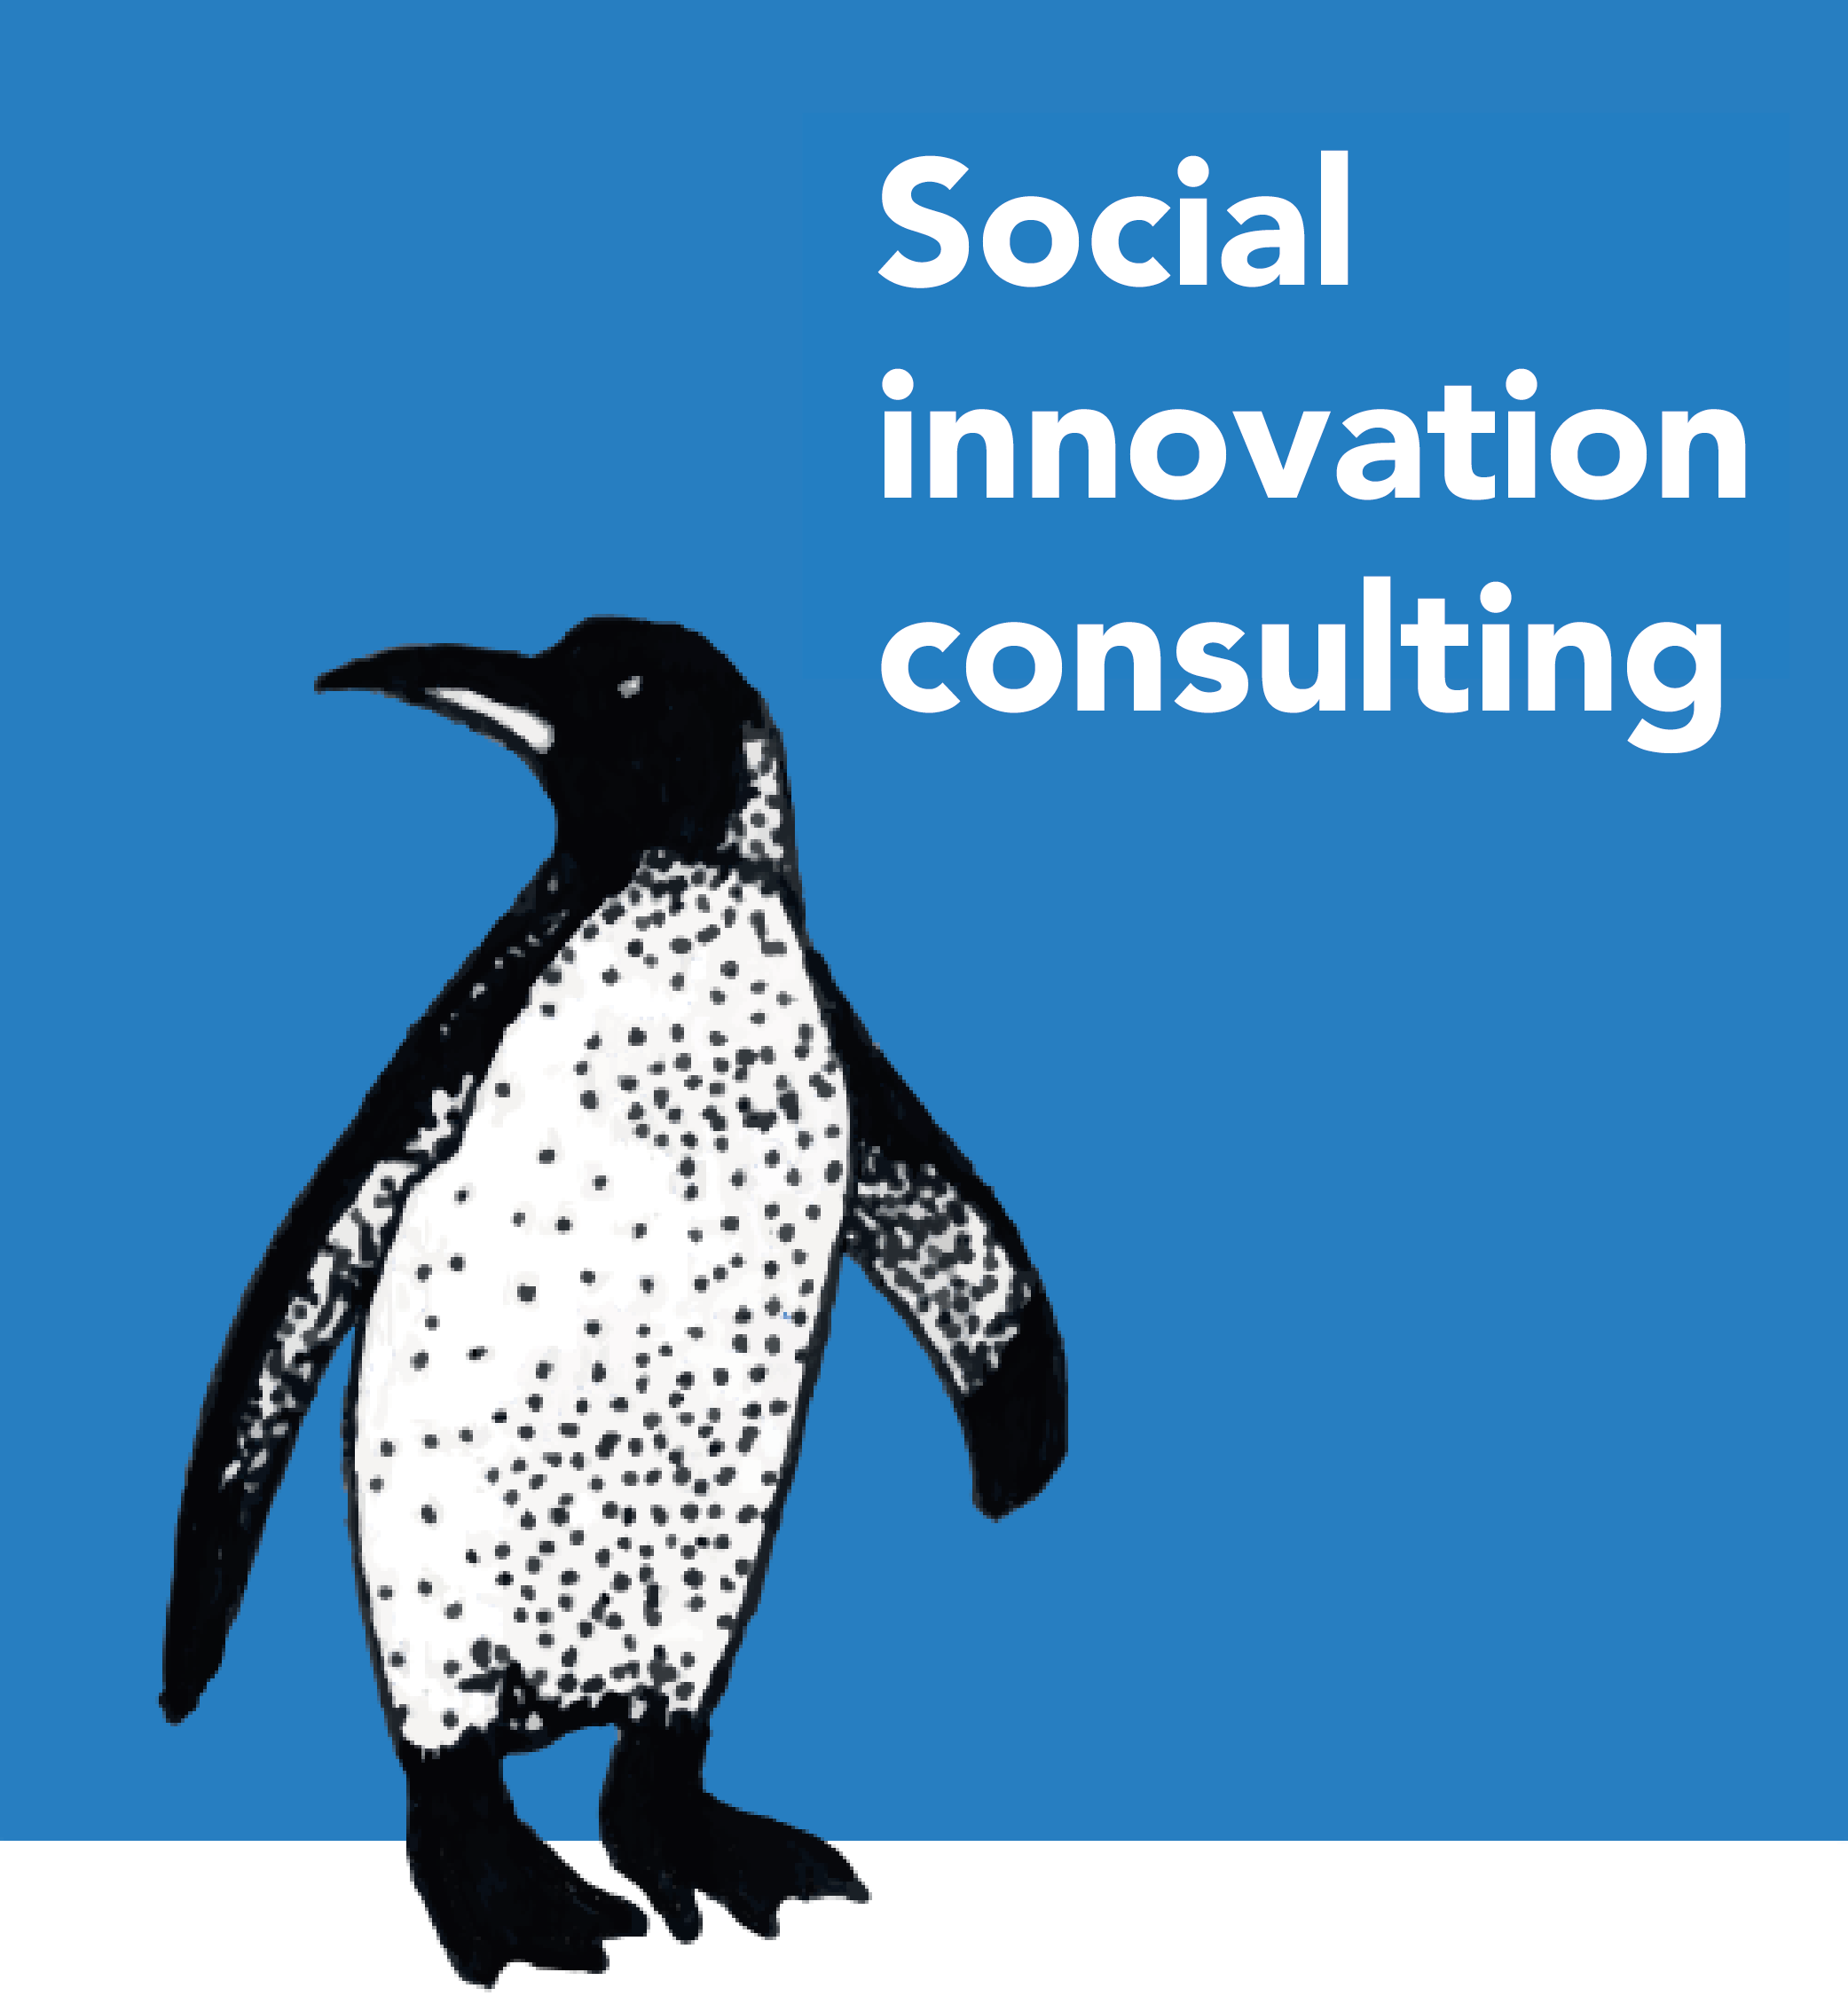 Social innovation consulting